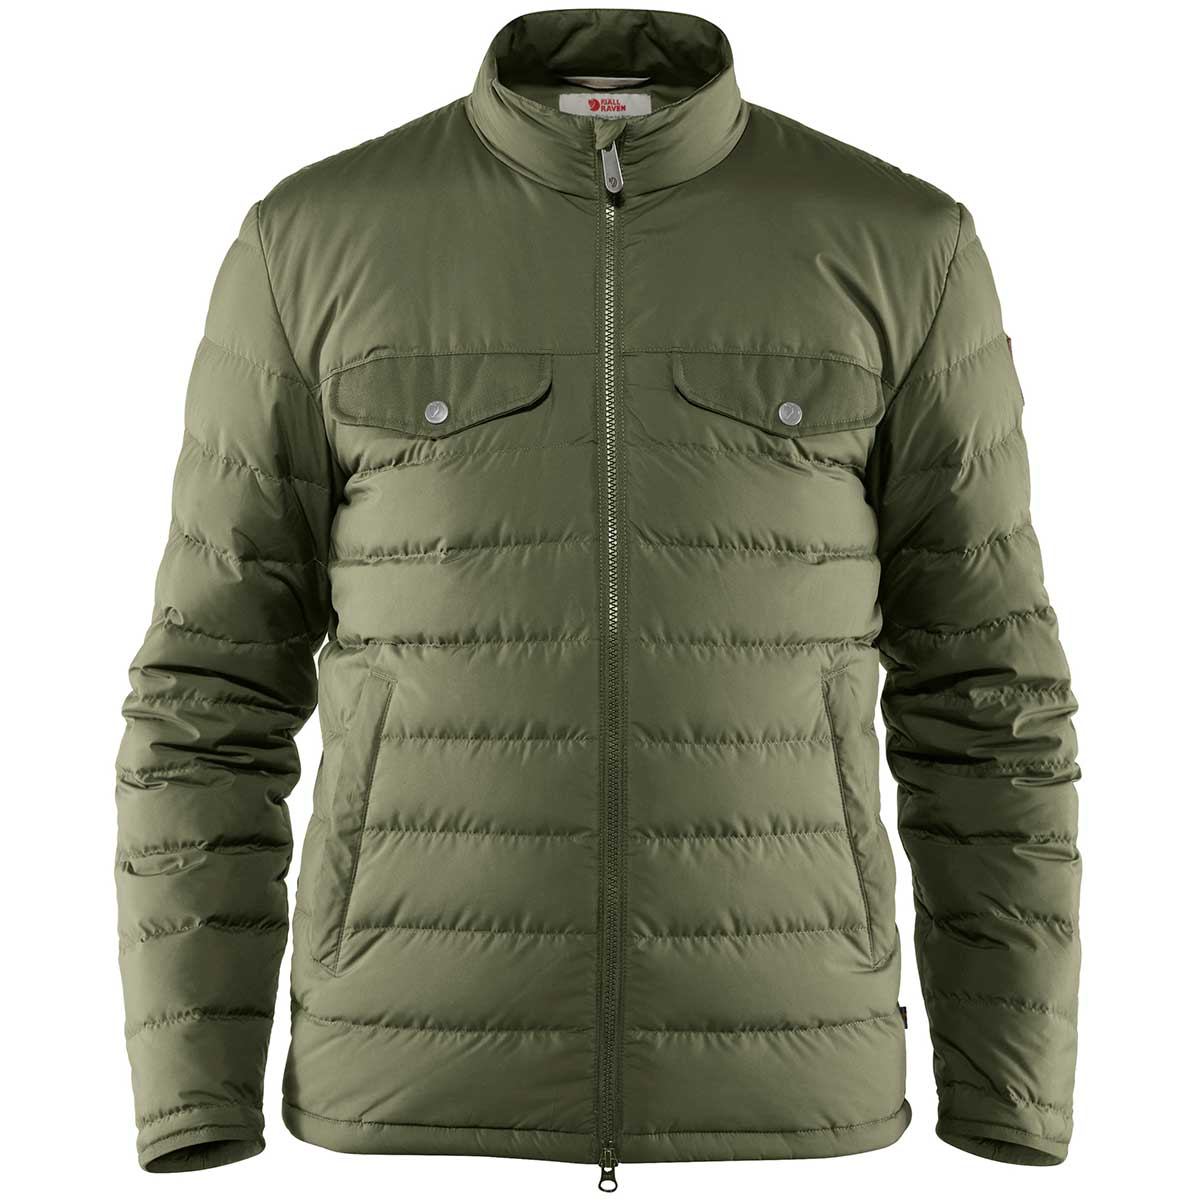 Fjallraven men's Greenland Down Liner Jacket in Green front view